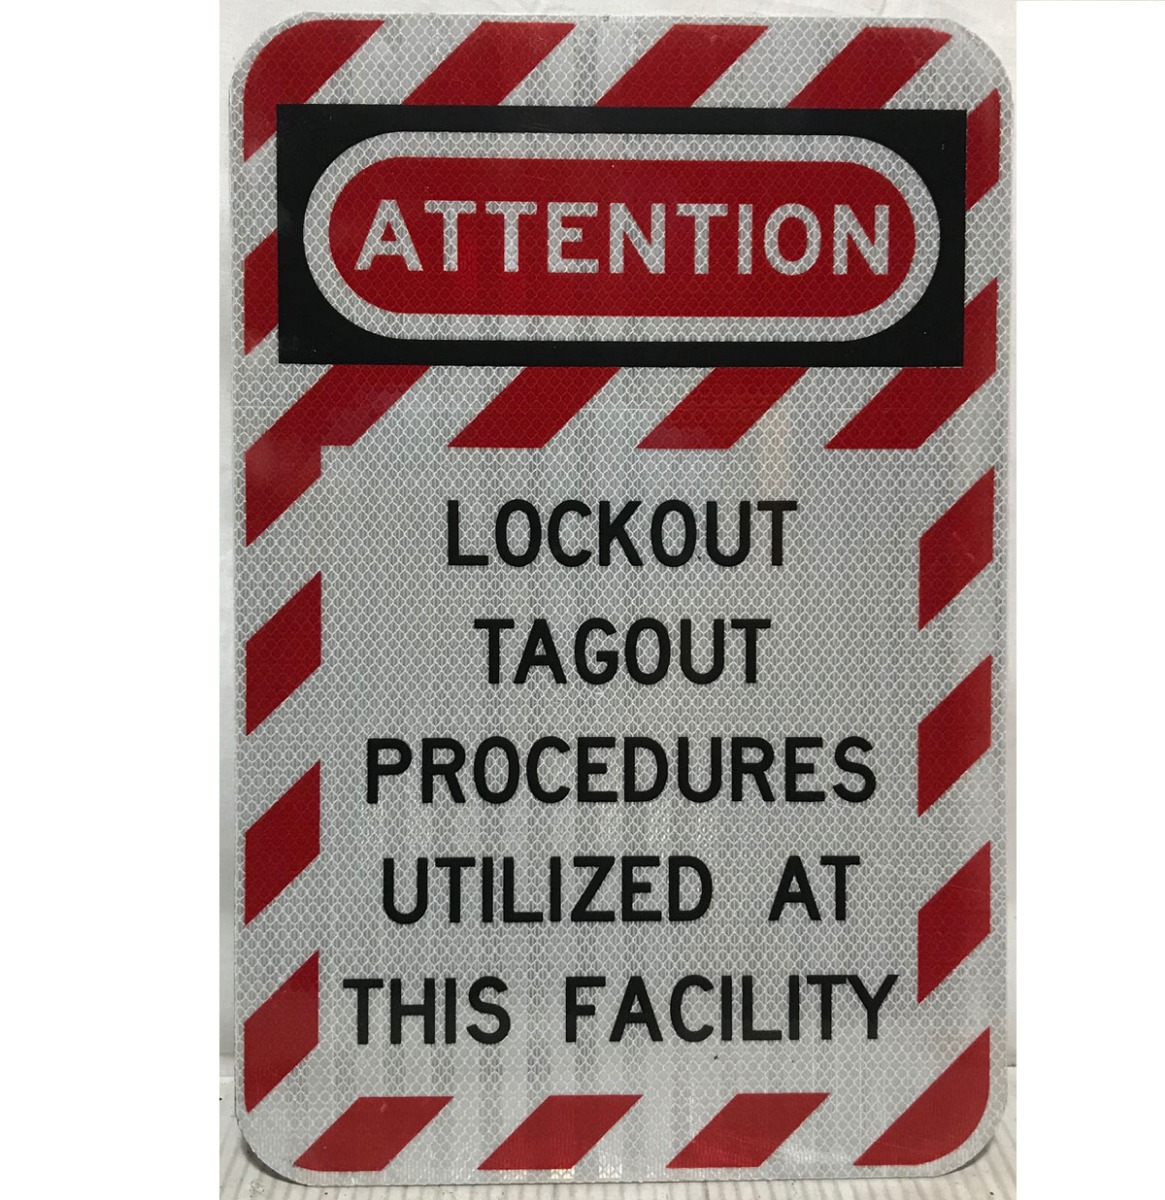 Attention Lockout Tagout Procedures Utilized At This Facility - Origineel